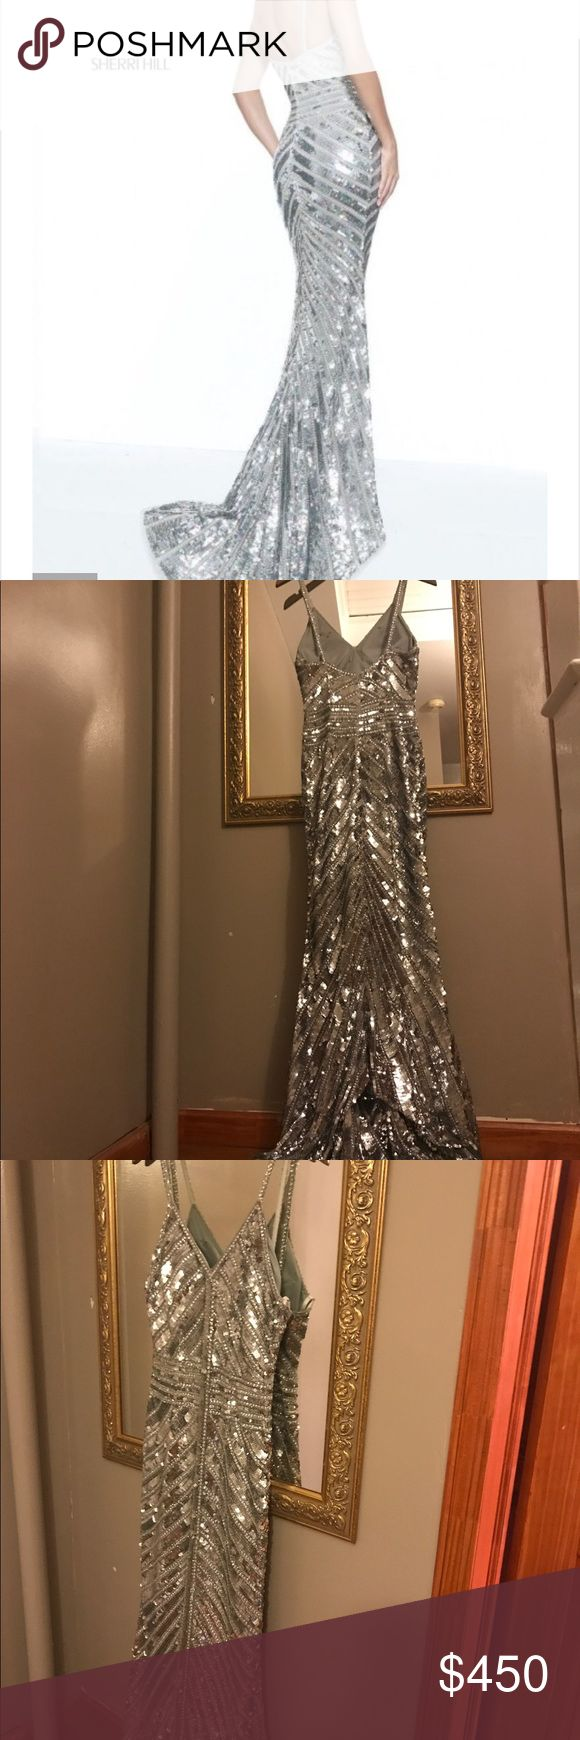 Sherri Hill 51206 Sequin Prom Dress Sherri Hill 51206 Sequin Prom Dress. Gorgeous dress just used once. Like new condition. Firm price please Sherri Hill Dresses Prom